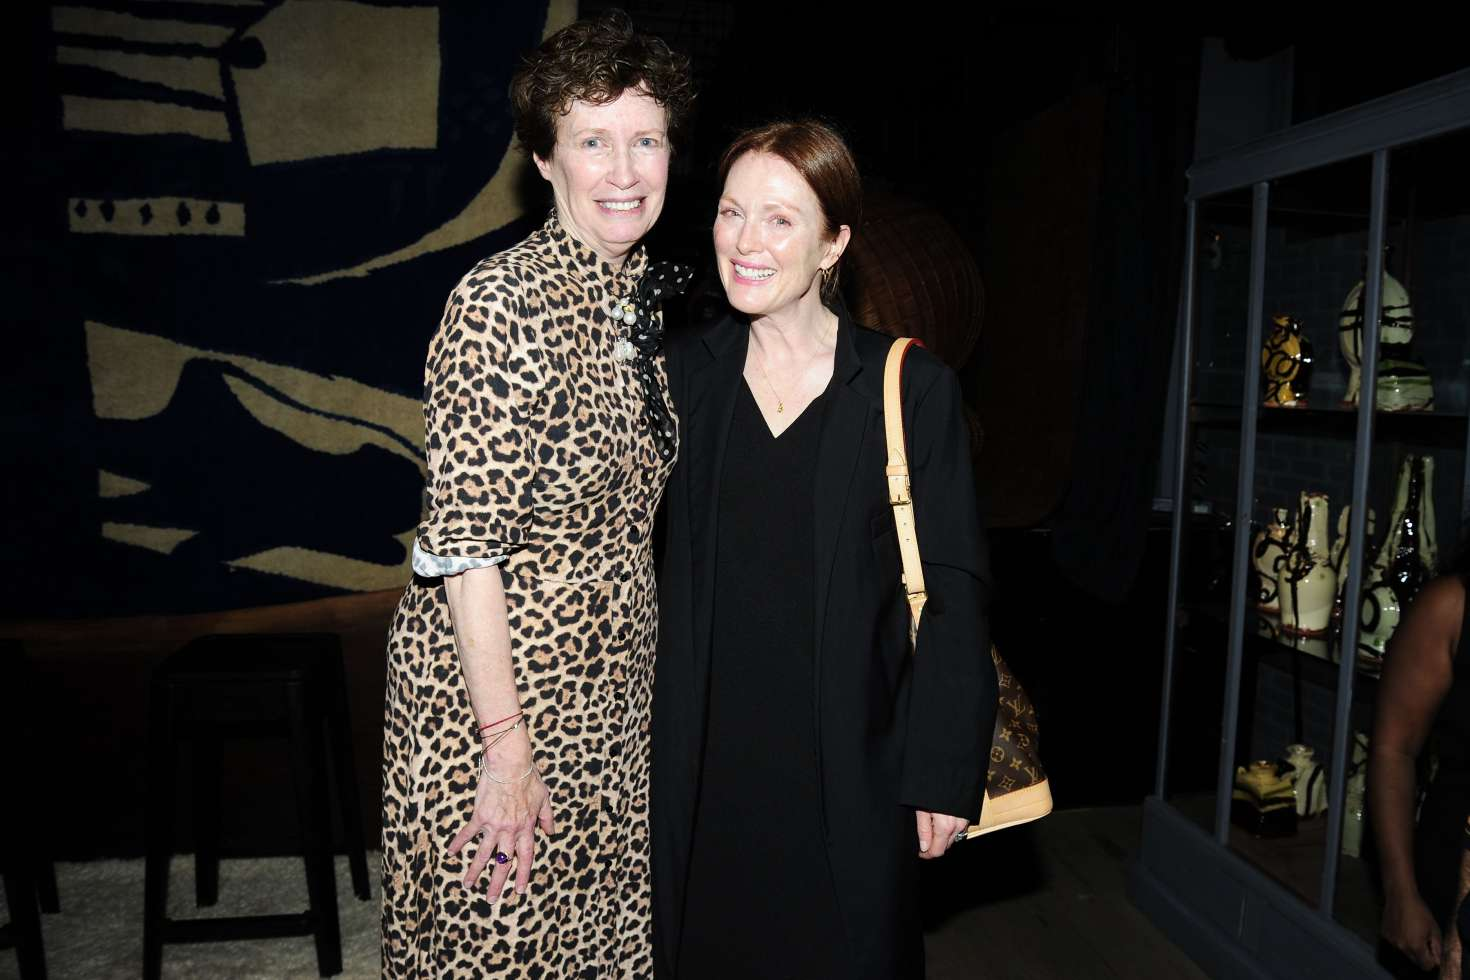 Julianne Moore 2018 : Julianne Moore: Wendy Goodman Celebrates The Release Of Her New Book May I Come In -03